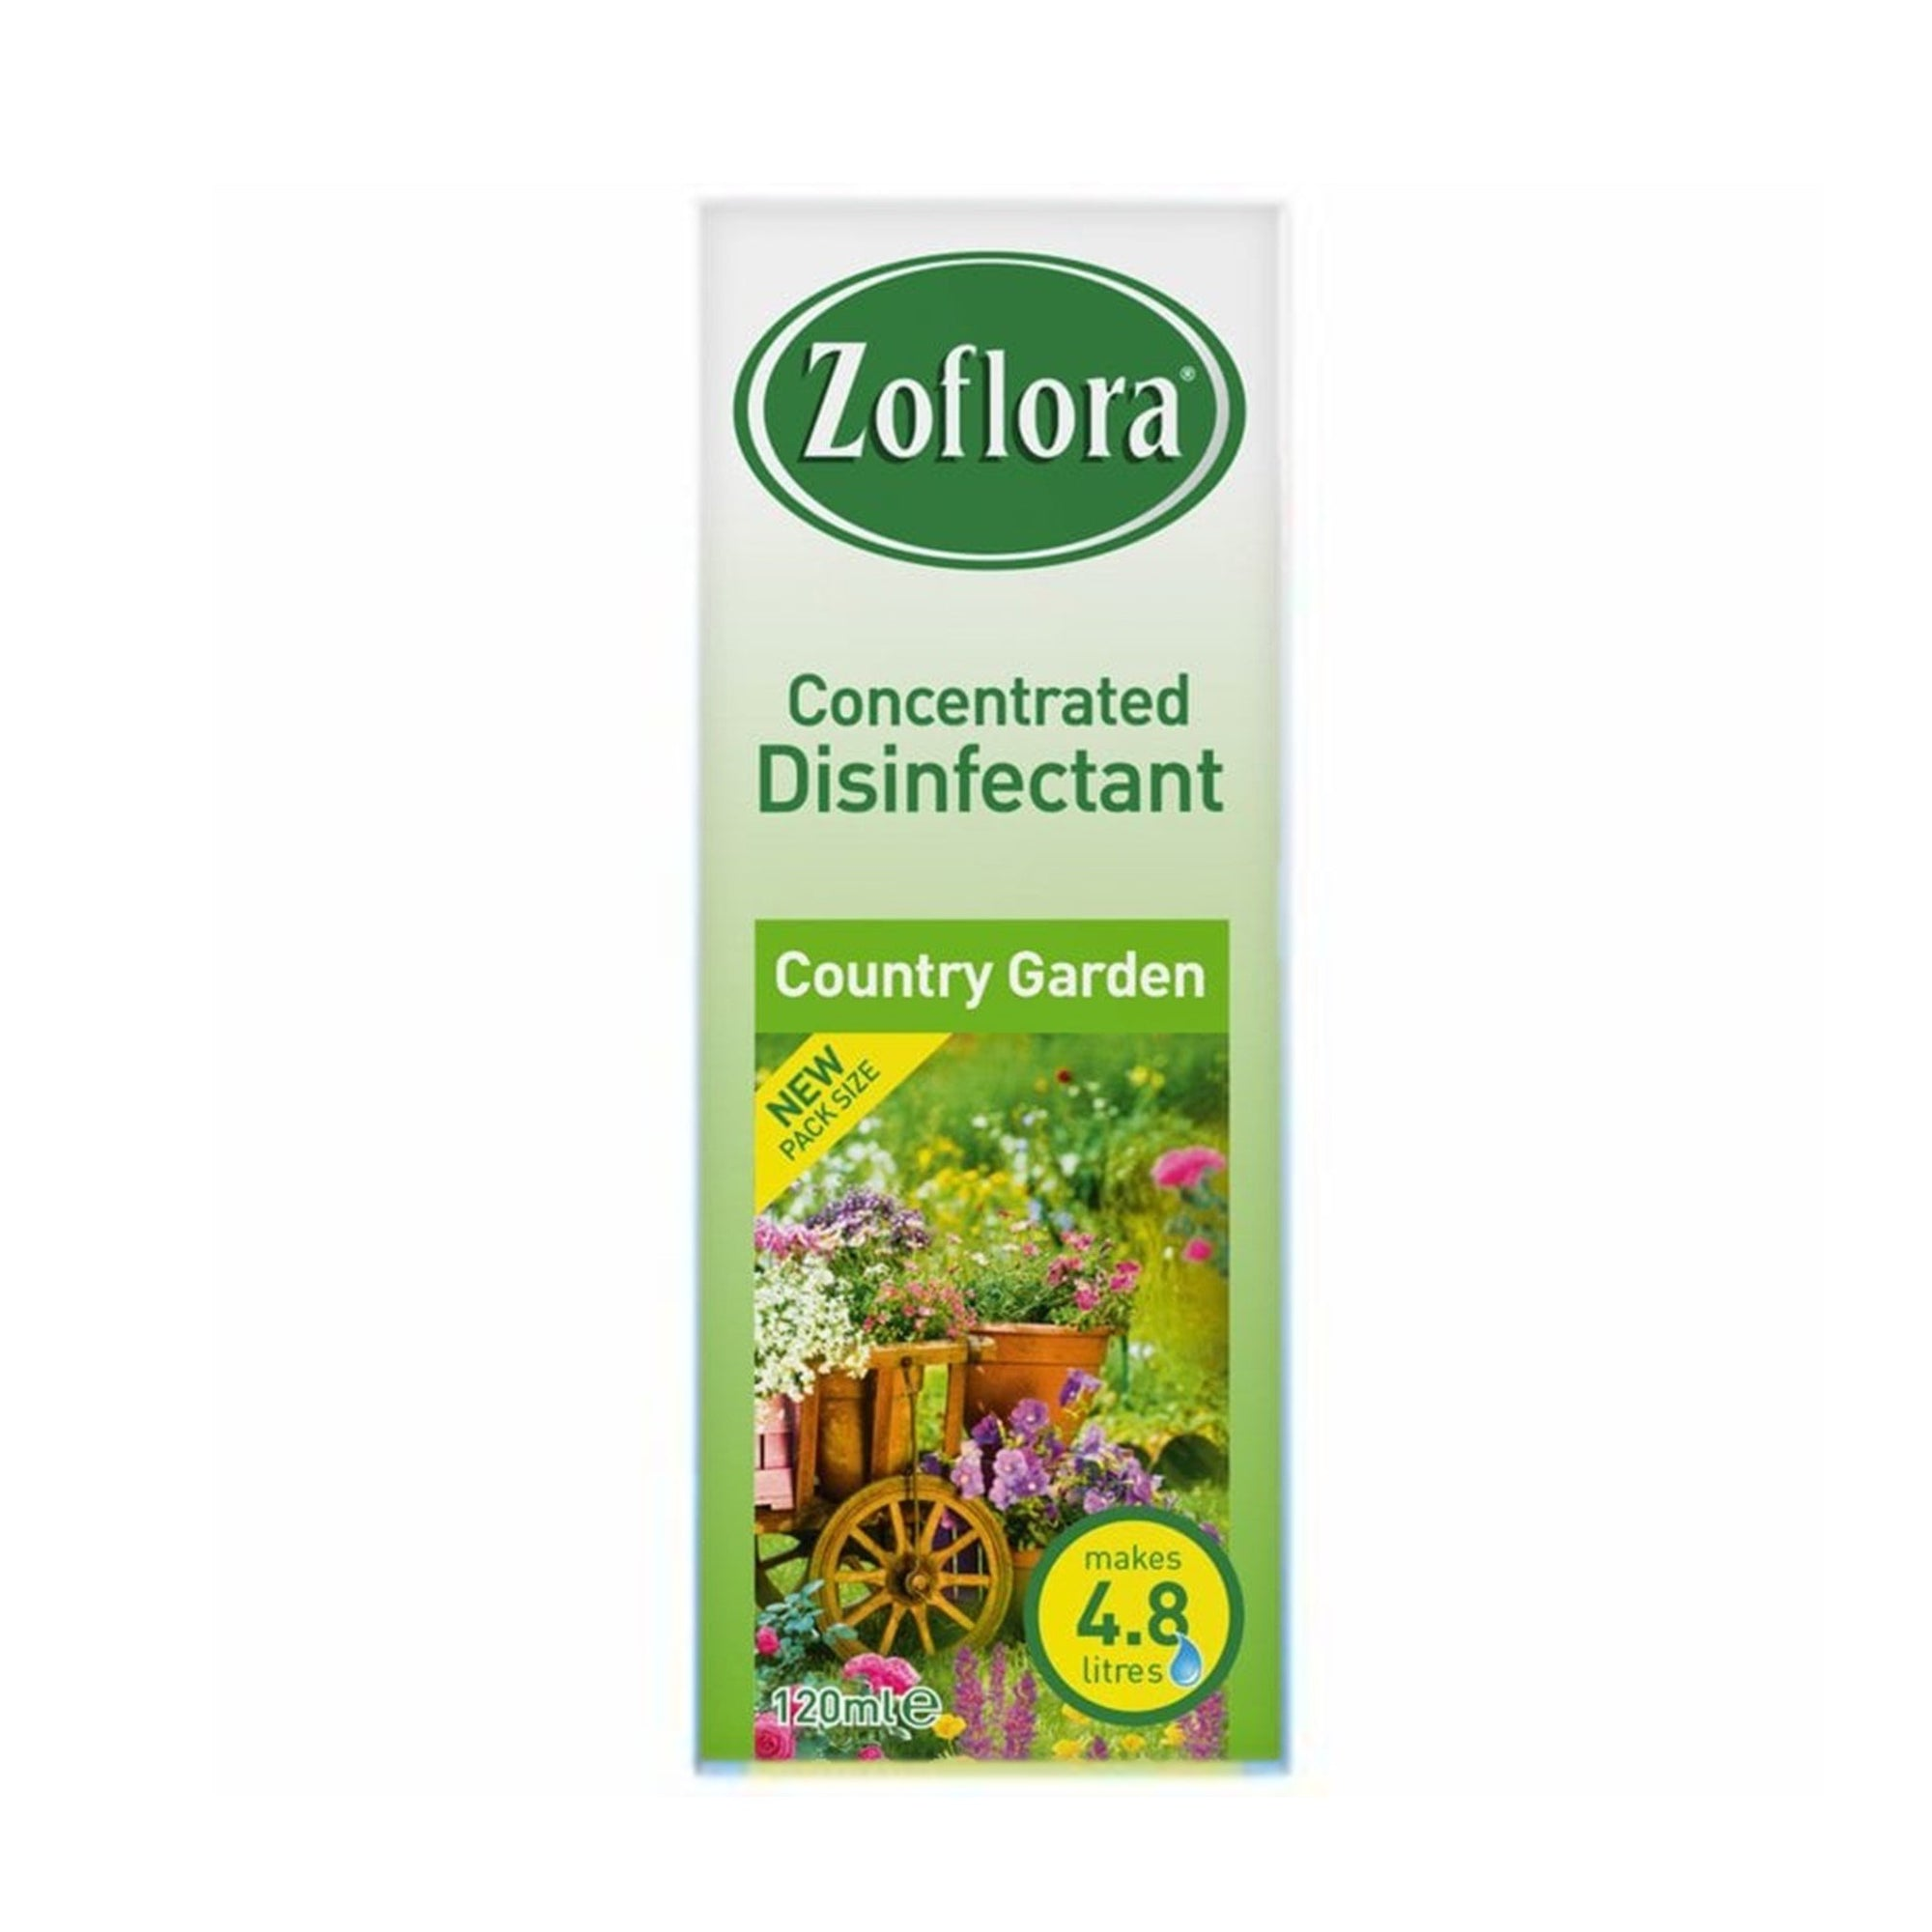 Zoflora Concentrated Disinfectant Country Garden 120ml